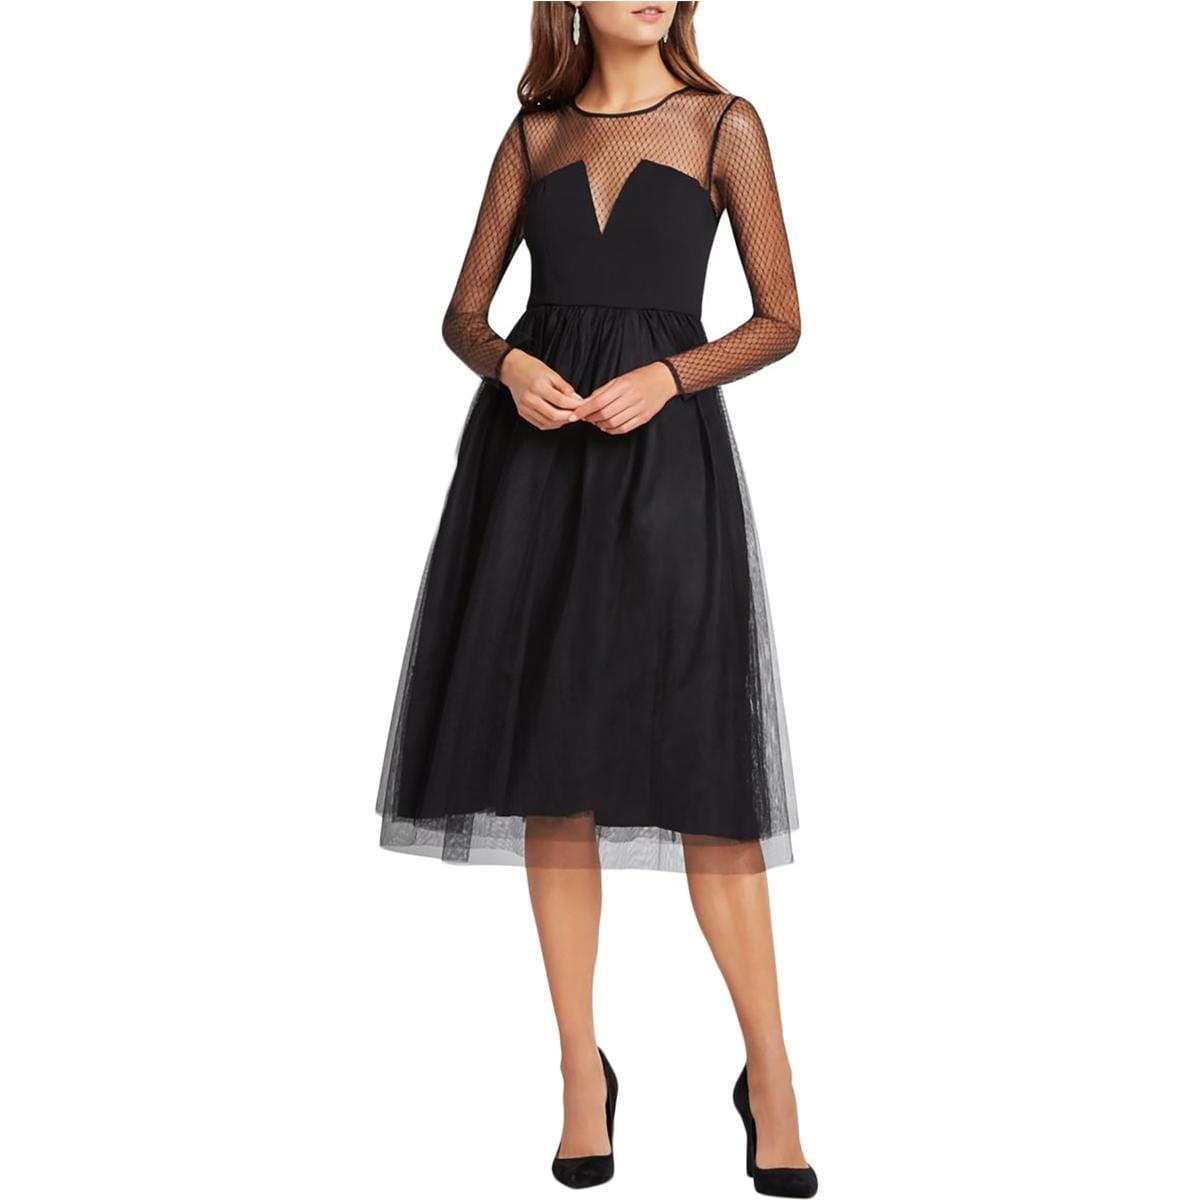 eb25ce0cfb3 Semi Formal Dress For Chubby Ladies - Gomes Weine AG